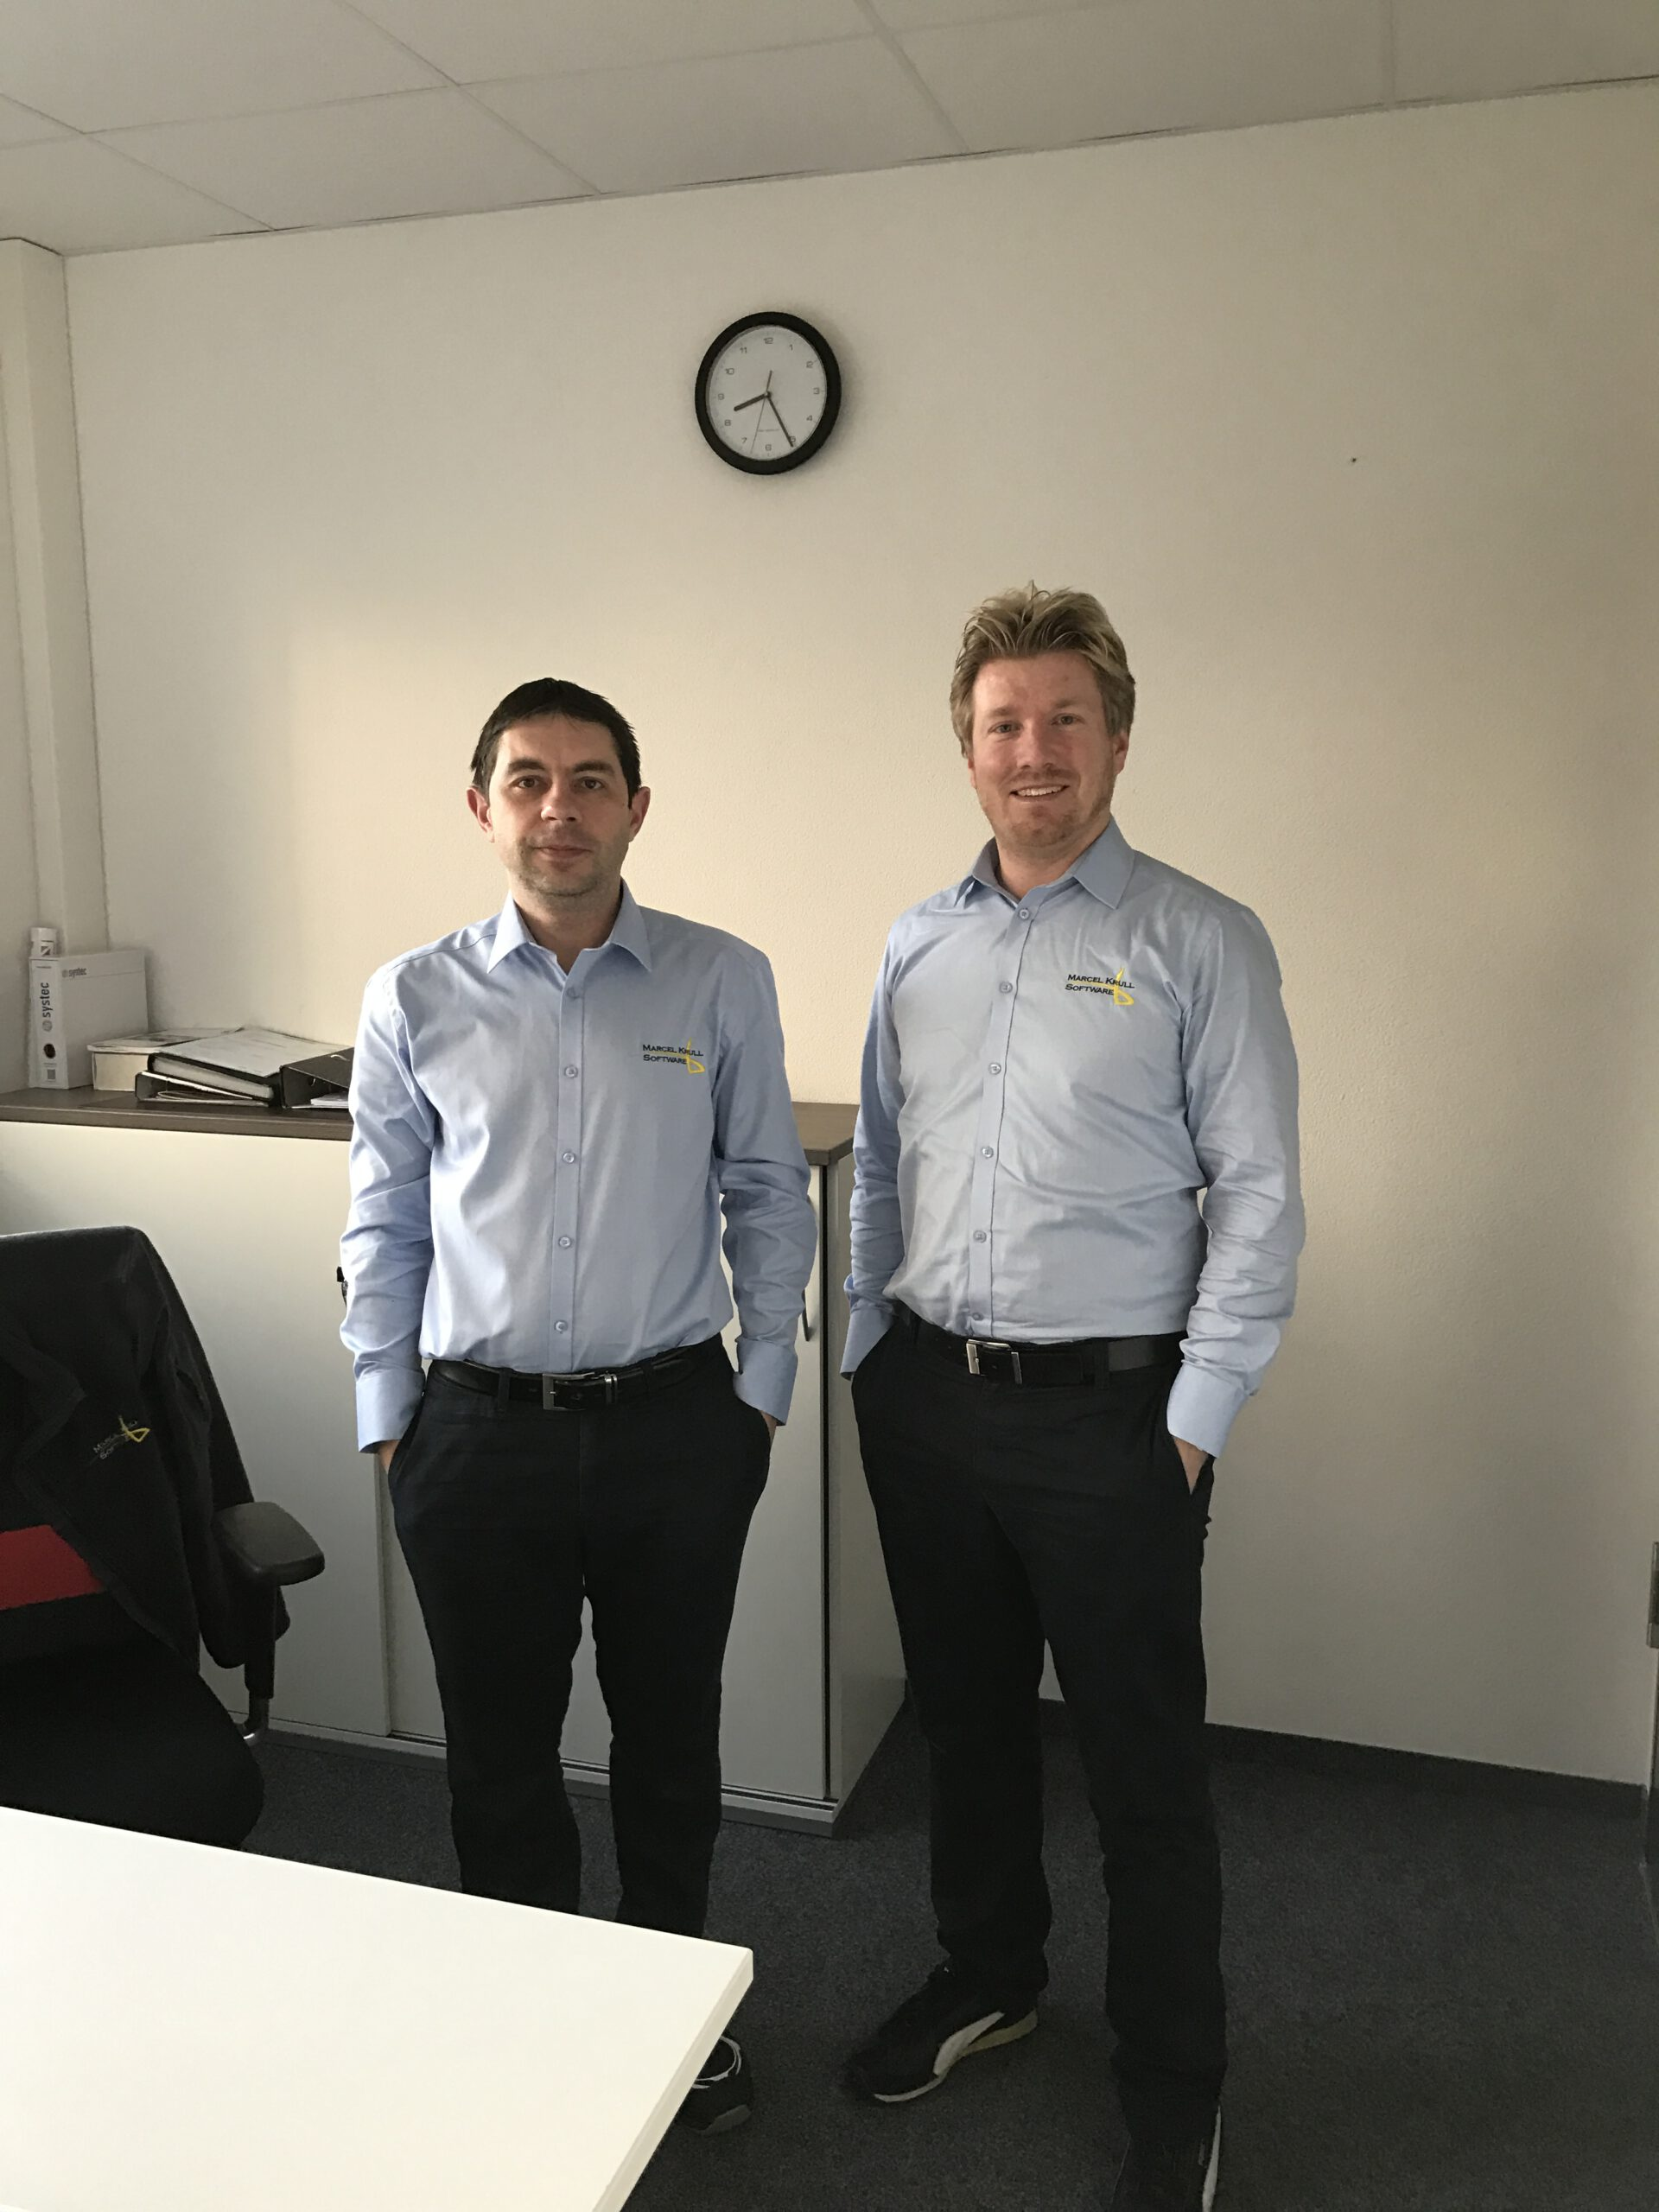 SPS Programmierer team Krull Software